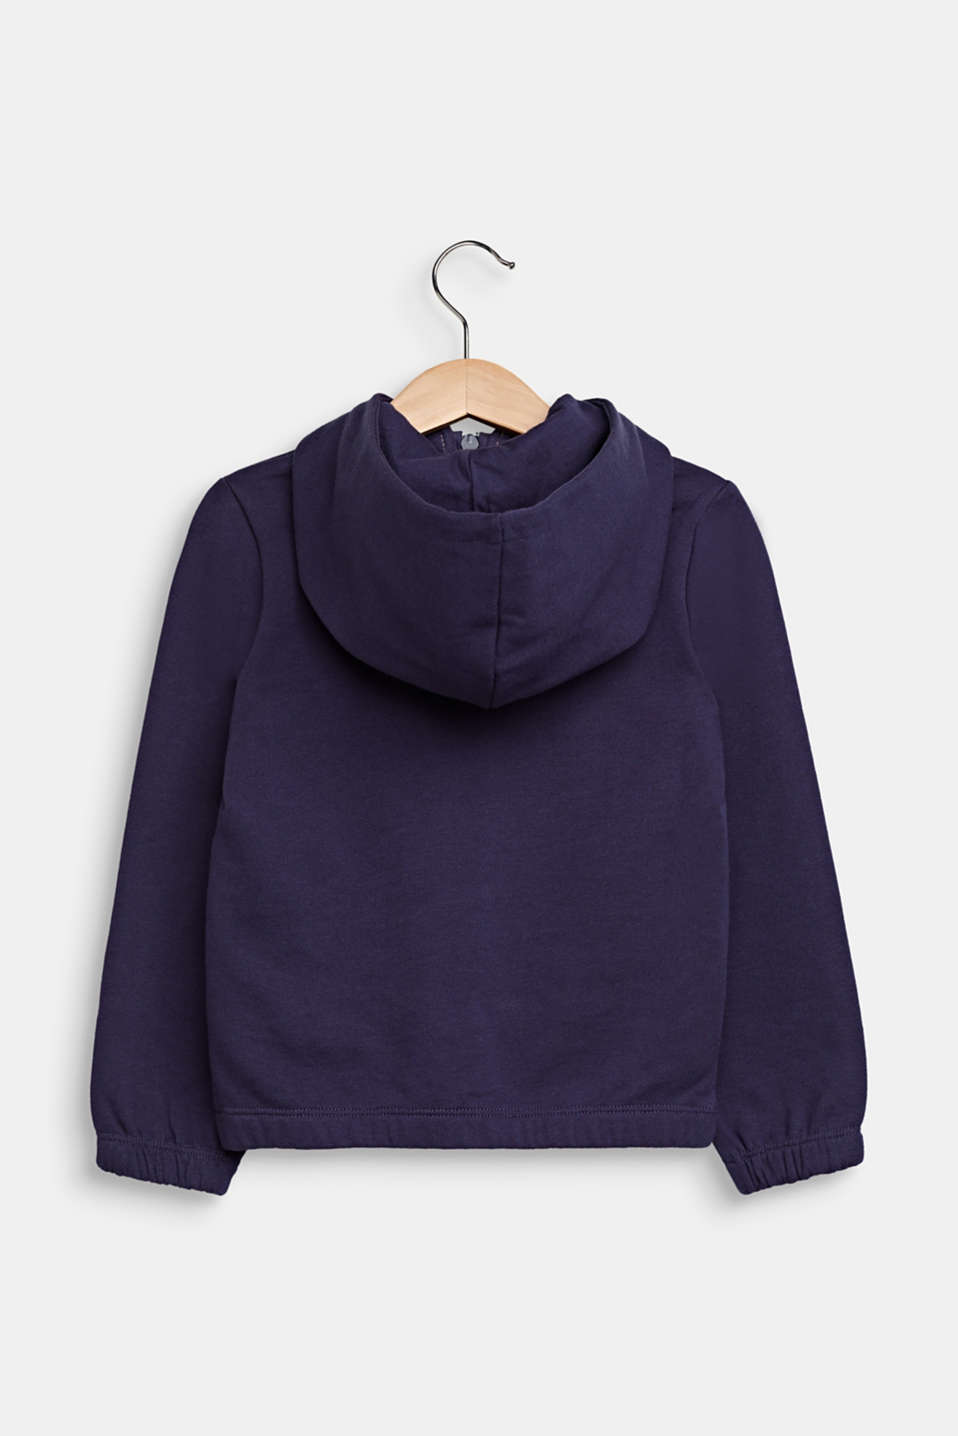 Sweatshirt fabric cardigan with a hood, MIDNIGHT BLUE, detail image number 1